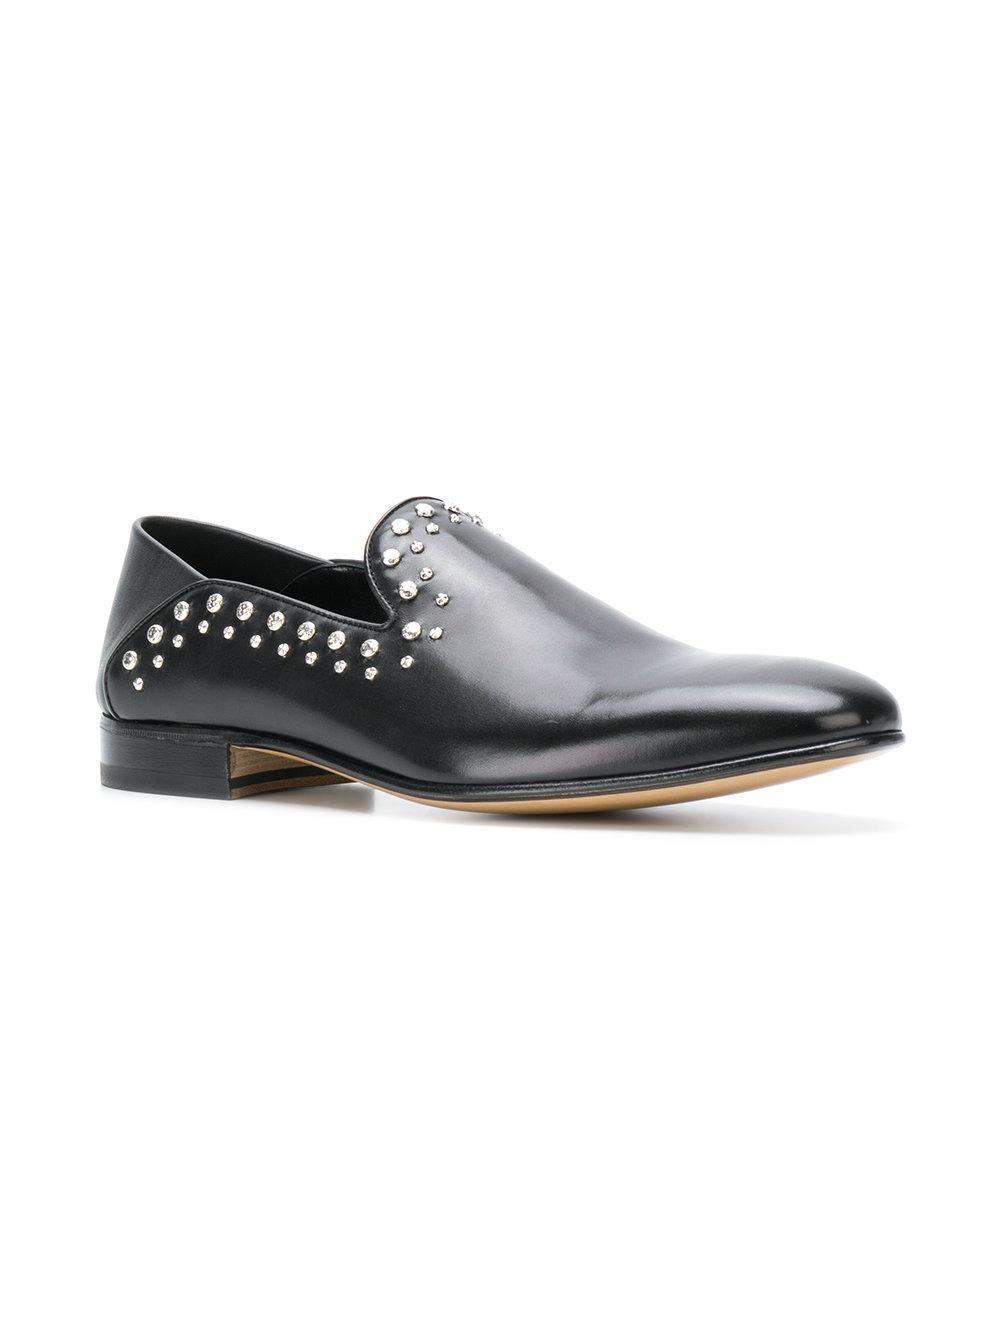 72cdd0520a8 Lyst - Alexander McQueen Studded Loafers in Black for Men